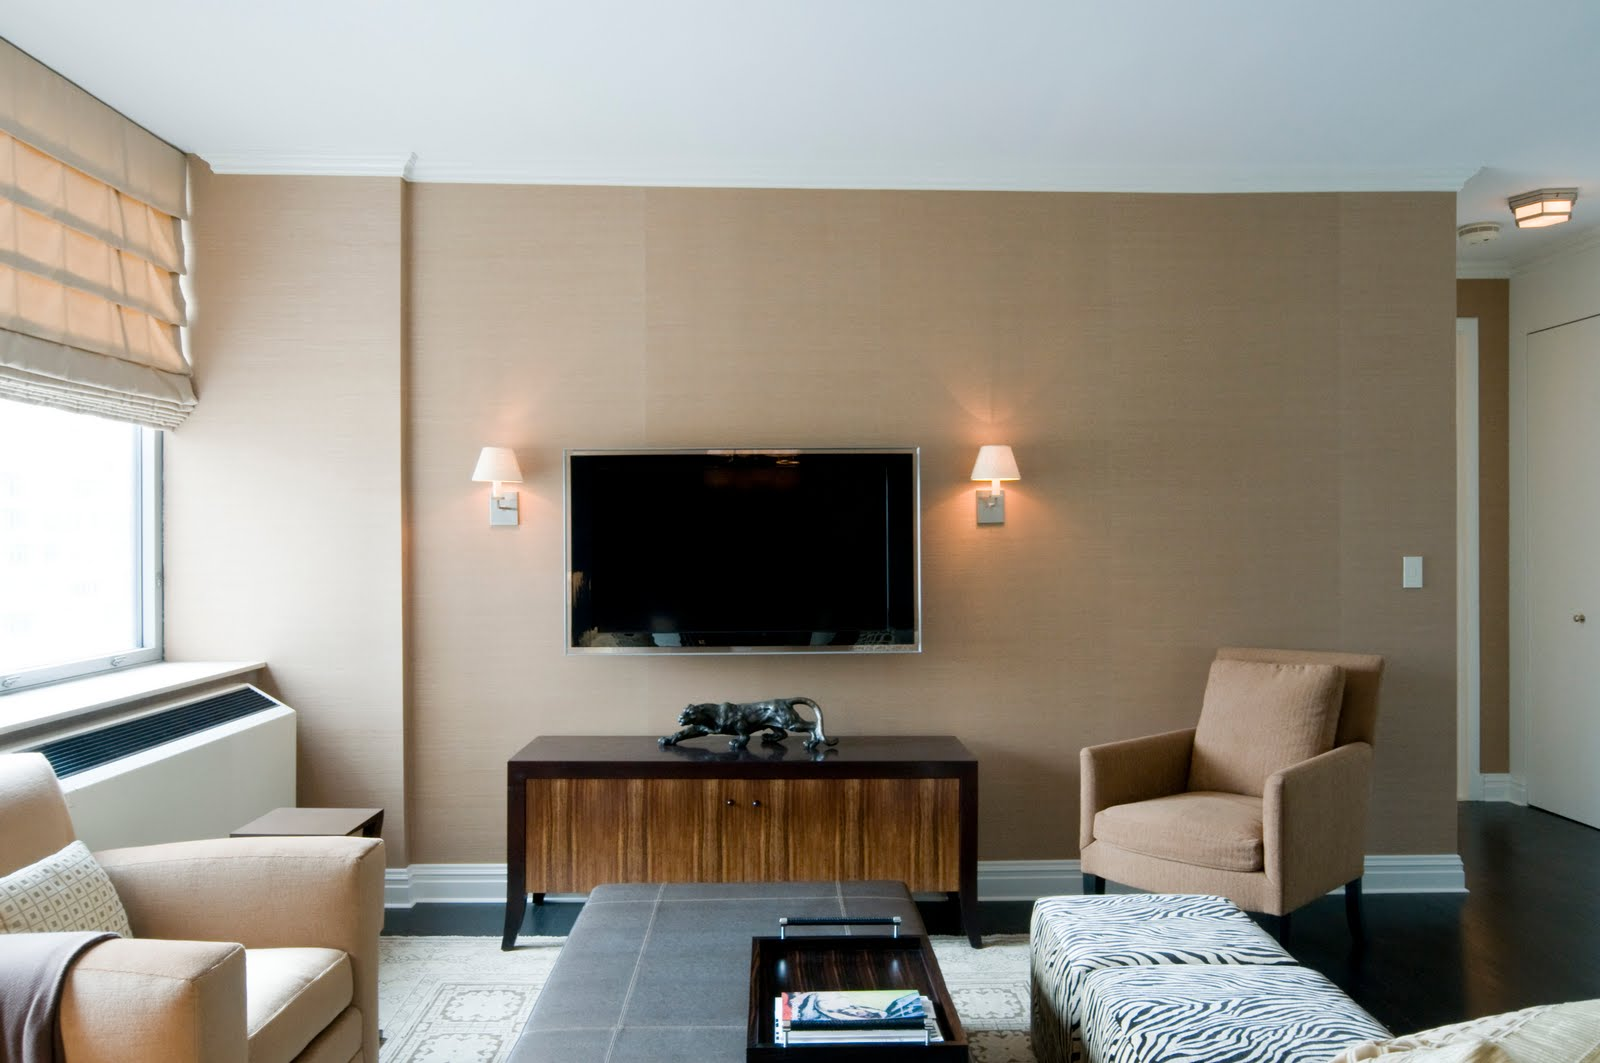 Marvelous There Are Many Ways To Work A TV Into Your Home. New York City Interior  Designer, Inson Wood Of Inson Dubois Wood LLC Shows Us How His Design Firm  Manages ...